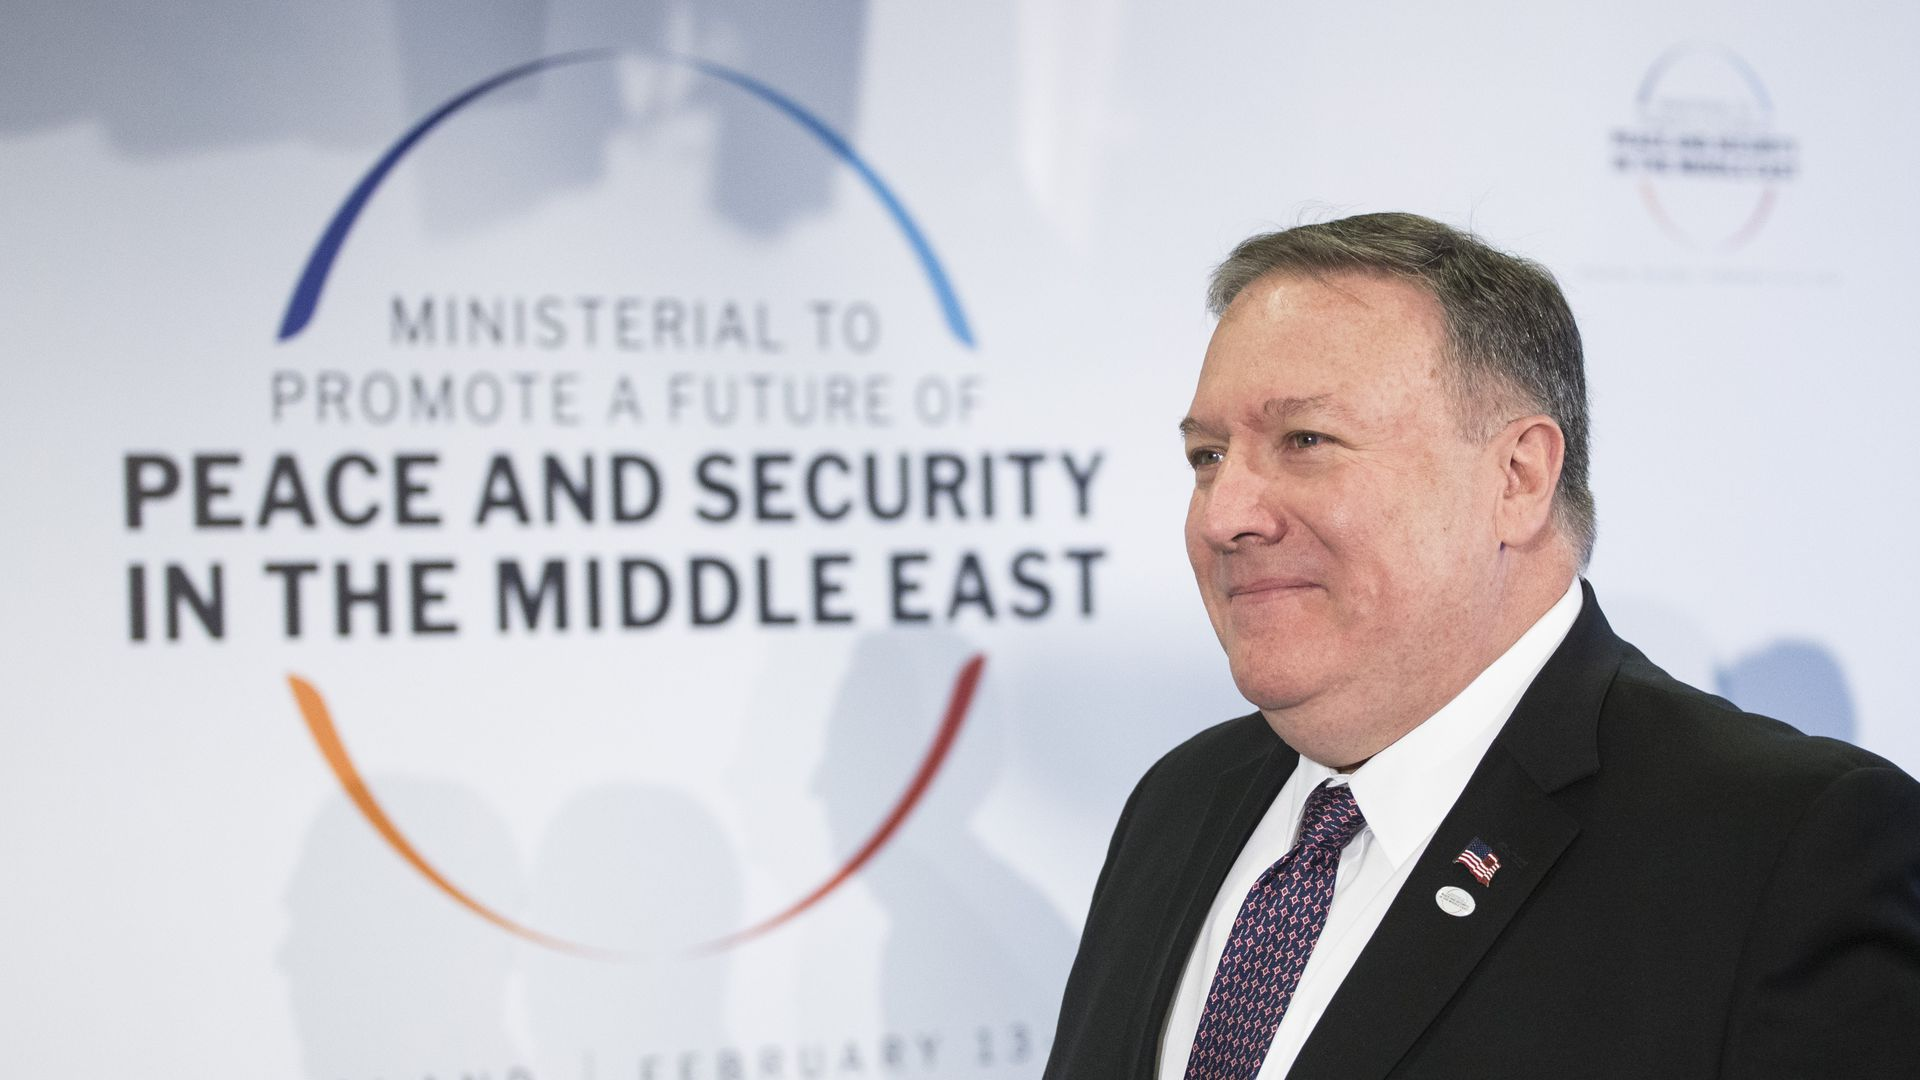 Mike Pompeo during Peace and Security in the Middle East conference in Warsaw on February 14, 2019.